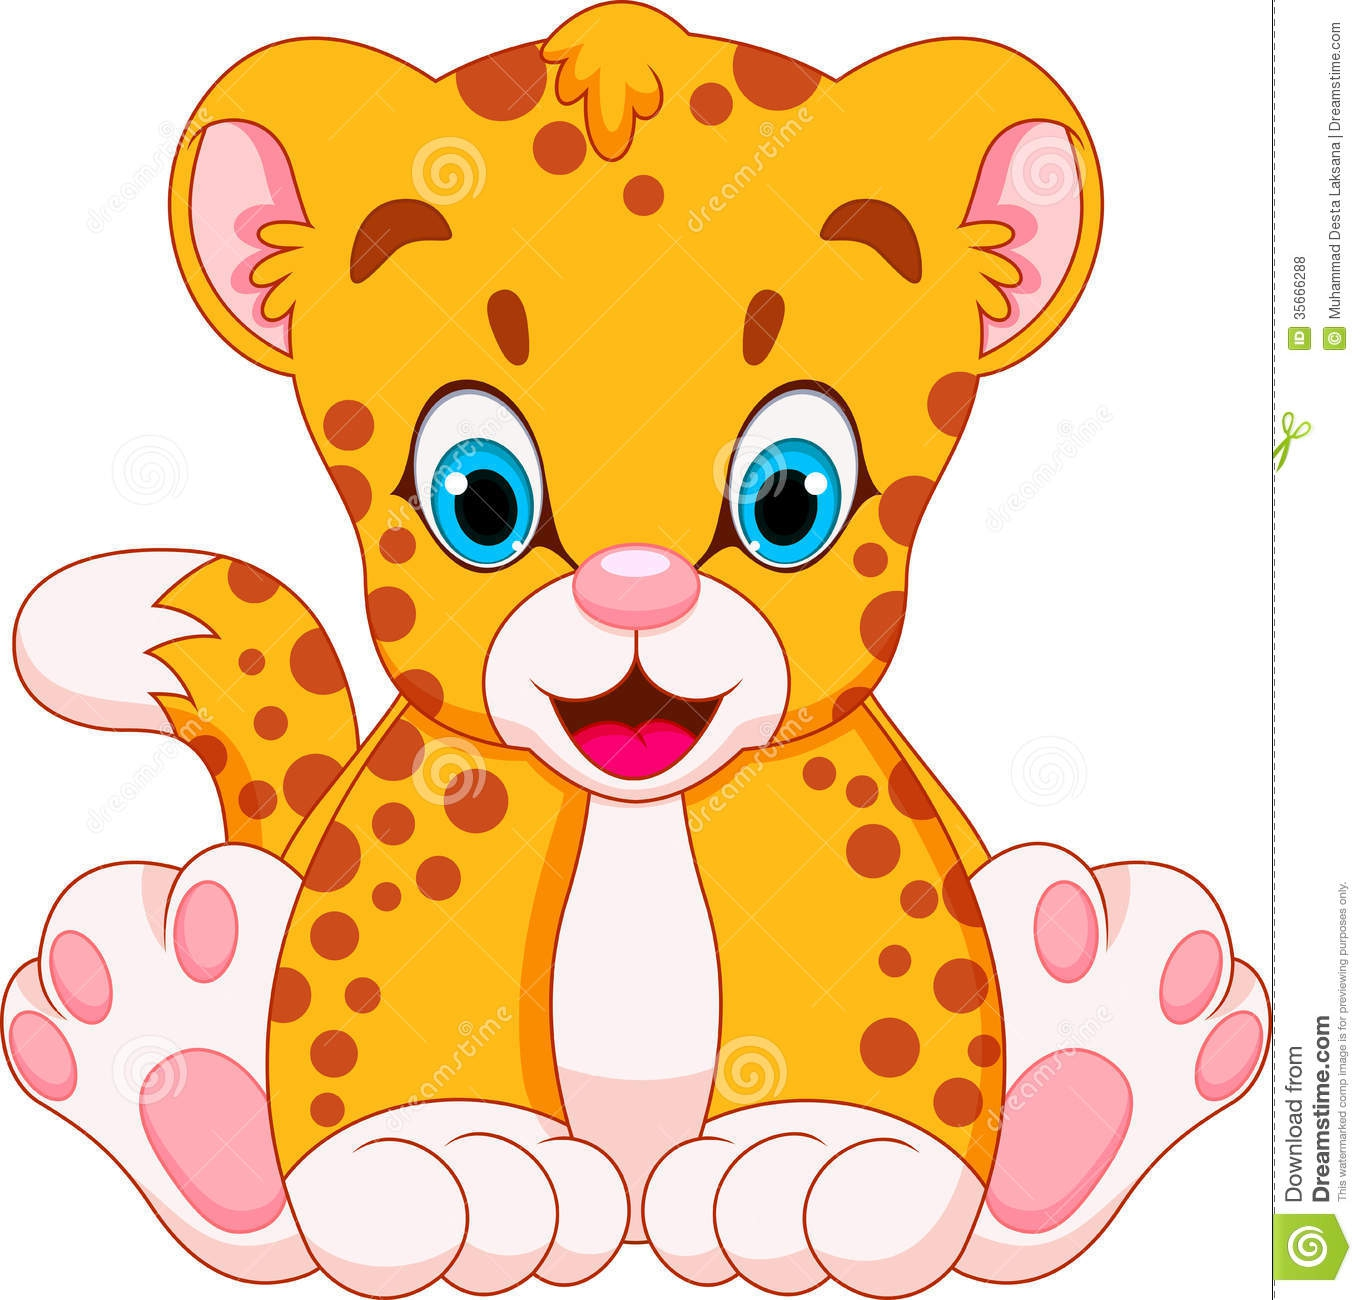 Cute Cheetah Clipart#2123518.